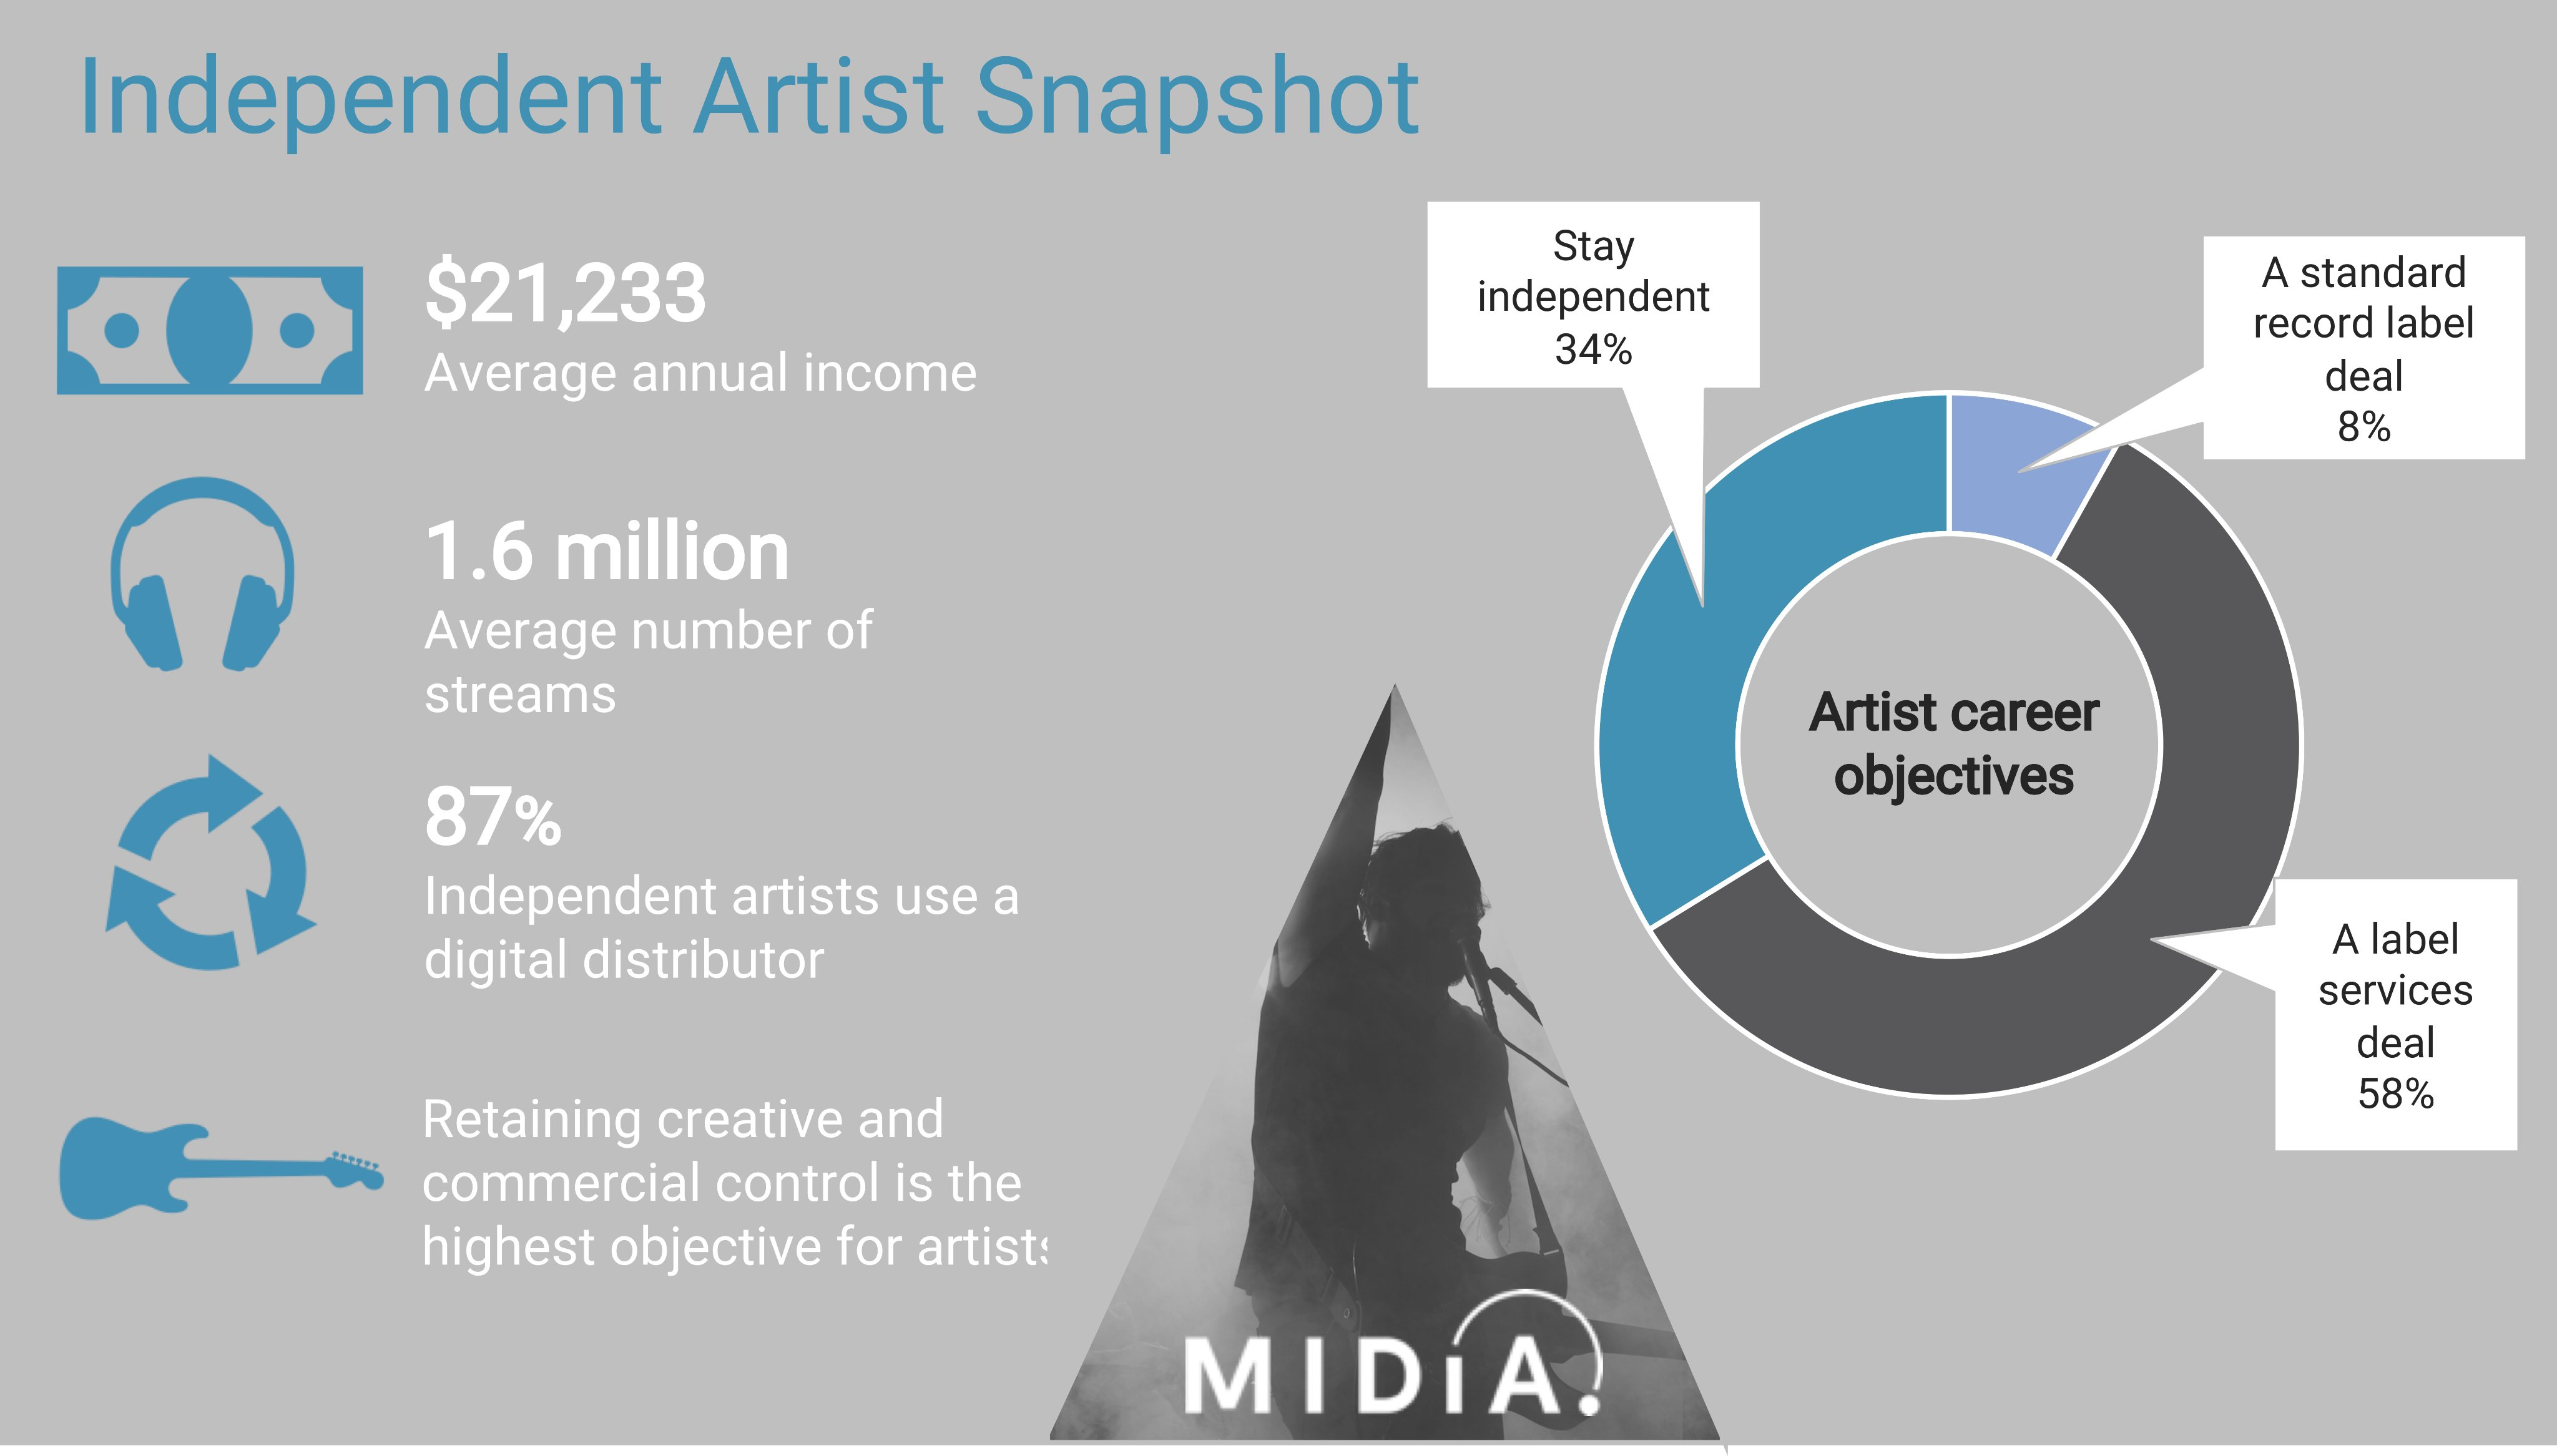 Independent Artists Snapshot 2020 Fastest Growing Part Of The